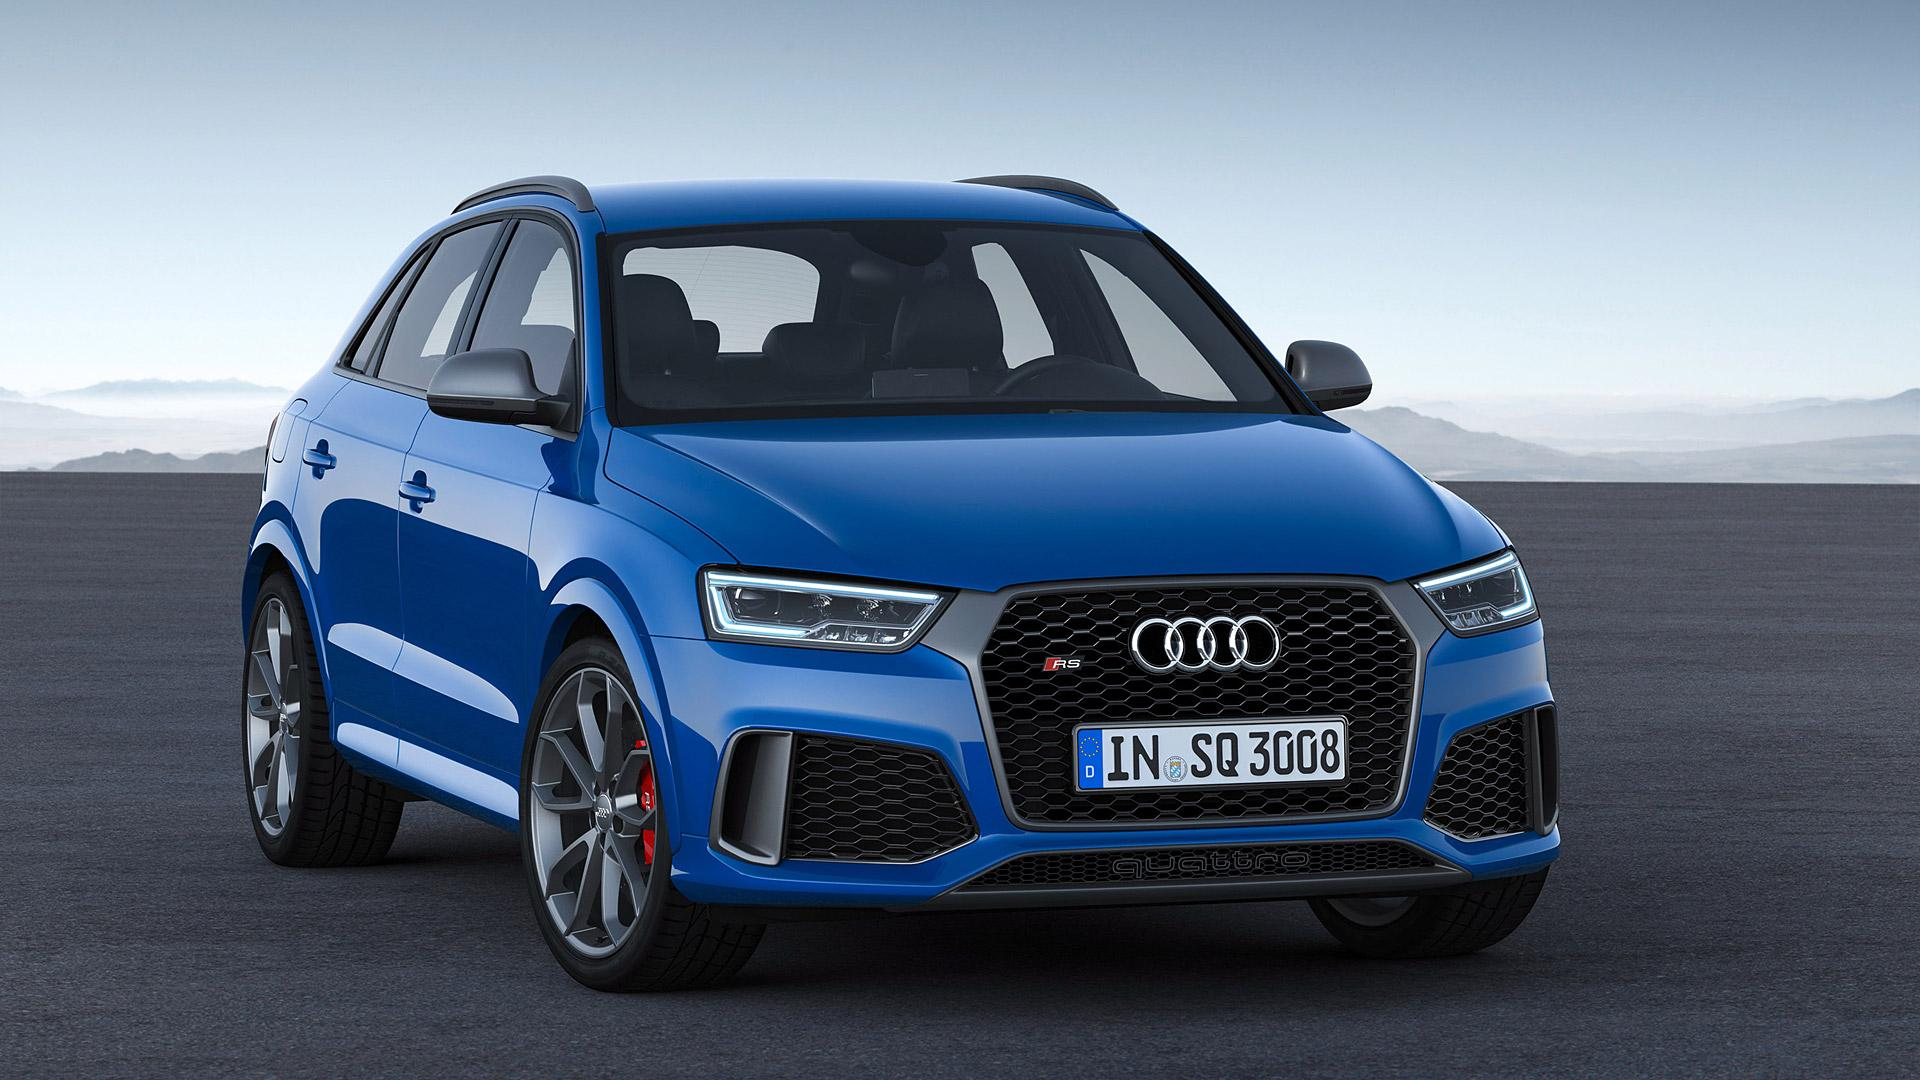 2017 Audi RS Q3 Performance Wallpapers & HD Image